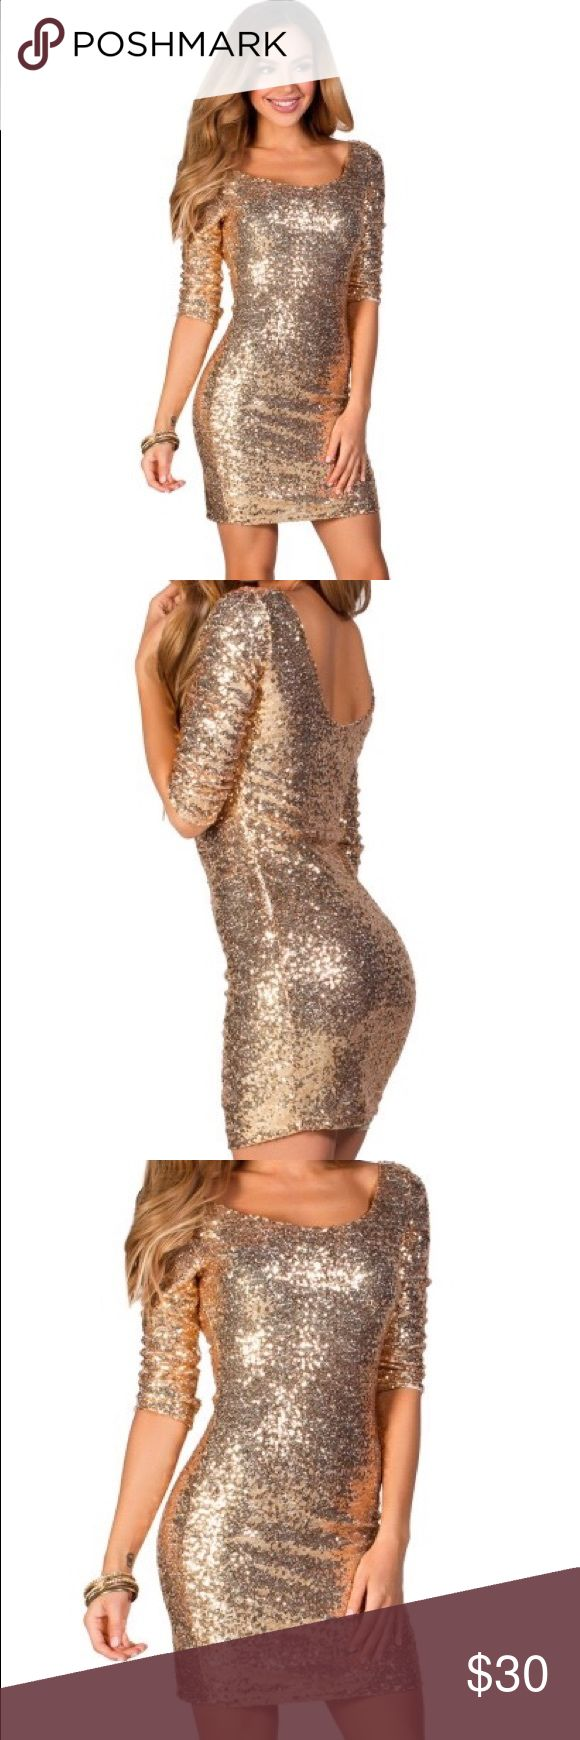 Gold sequin 3/4 sleeve NYE Dress It's never too early to be thinking about an event! I worn this one time! On NYE in New York to watch the ball drop! Such a magical night, and I felt amazing in the dress. Paired it with black legging and black short booties. But would be fabulous with some nude heels!  it is a size large, but I'm a comfortable medium Dresses Midi